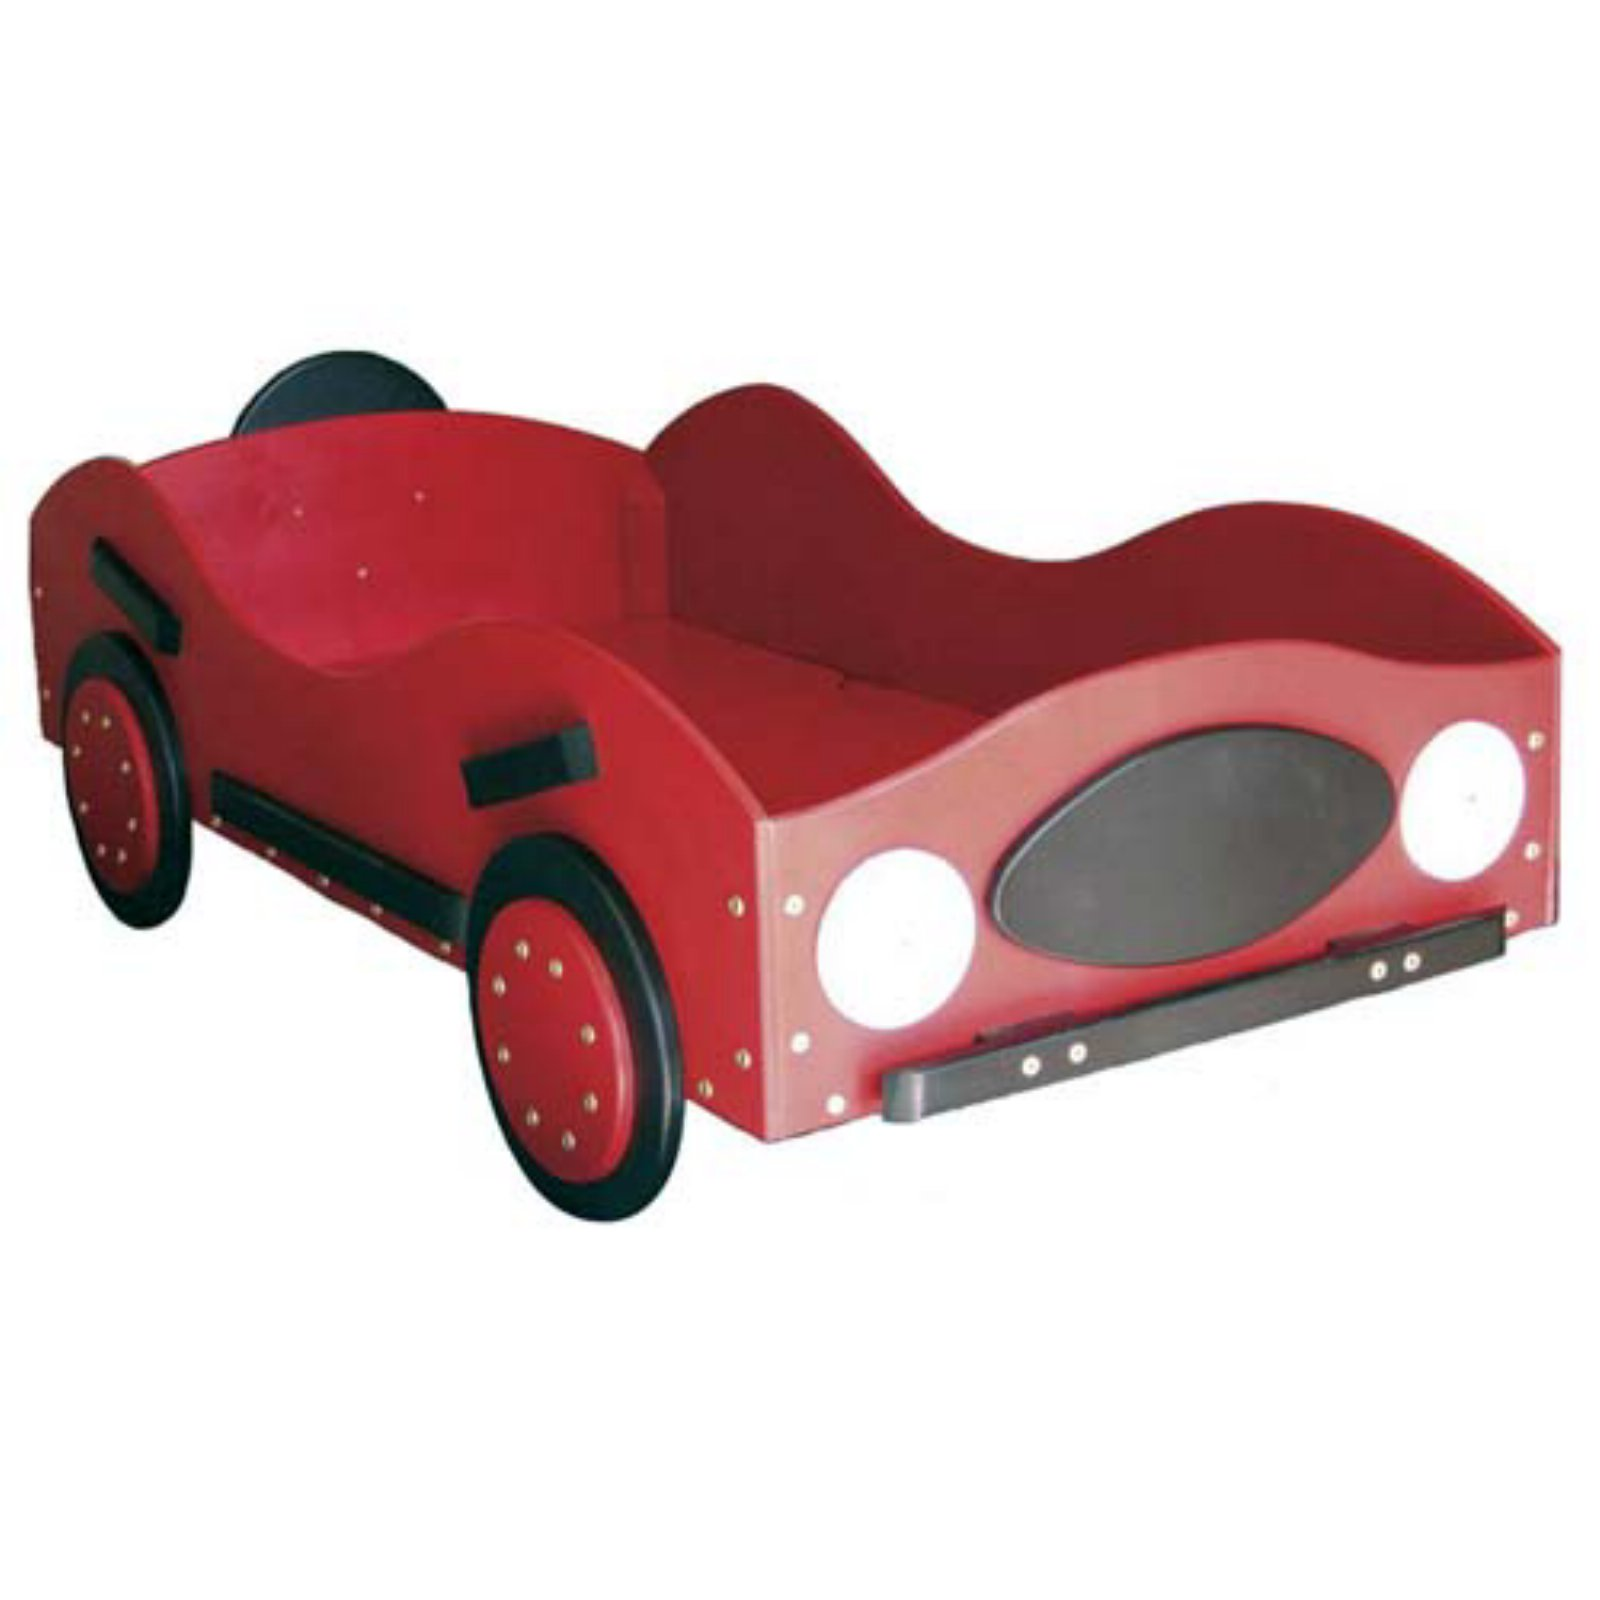 New Style-Race Car Toddler Bed